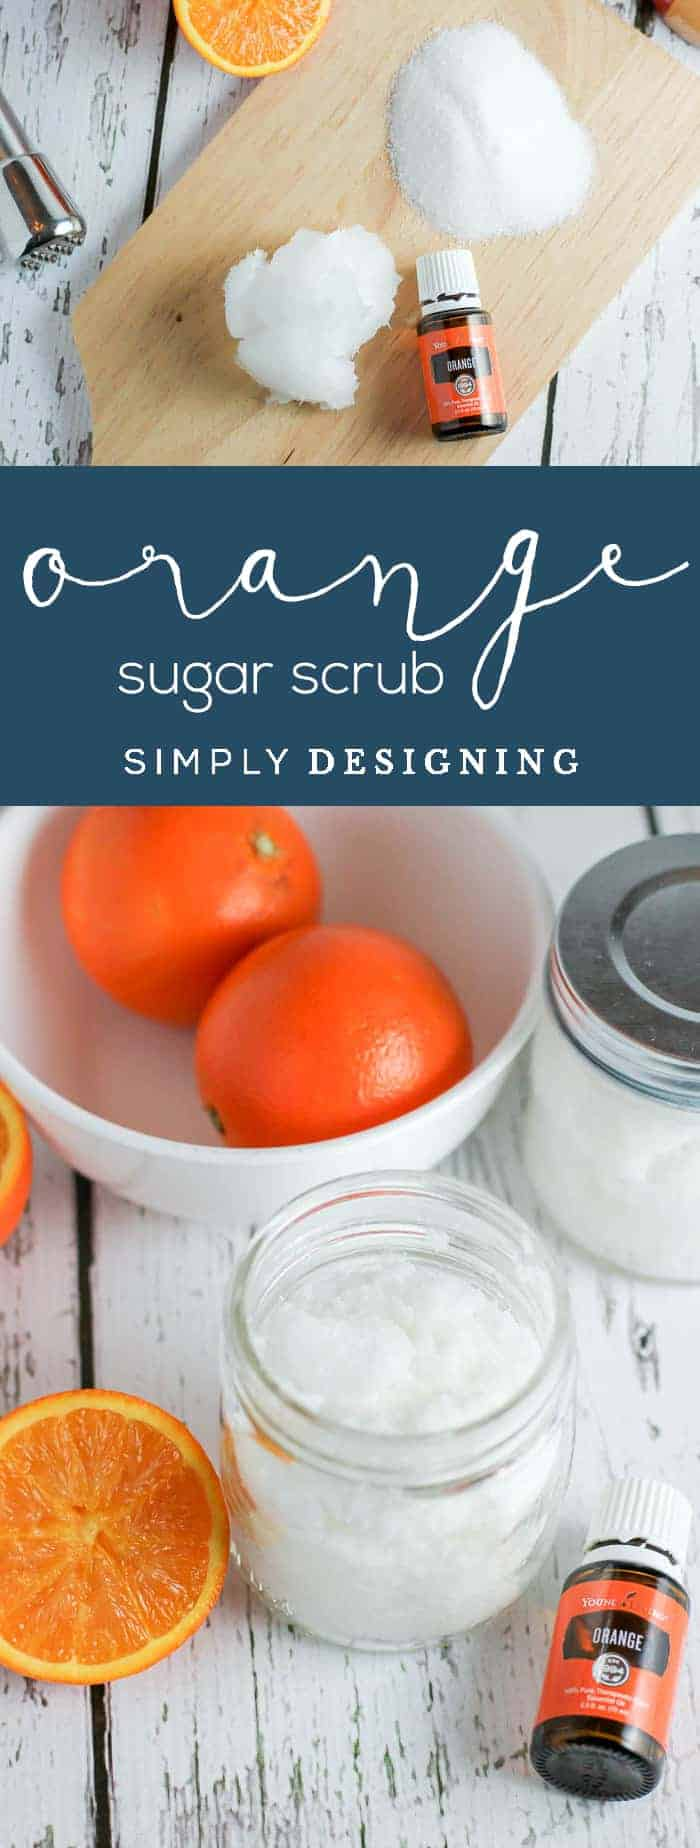 Orange DIY Sugar Scrub Recipe - sugar scrub recipe - diy body scrub - homemade sugar scrub